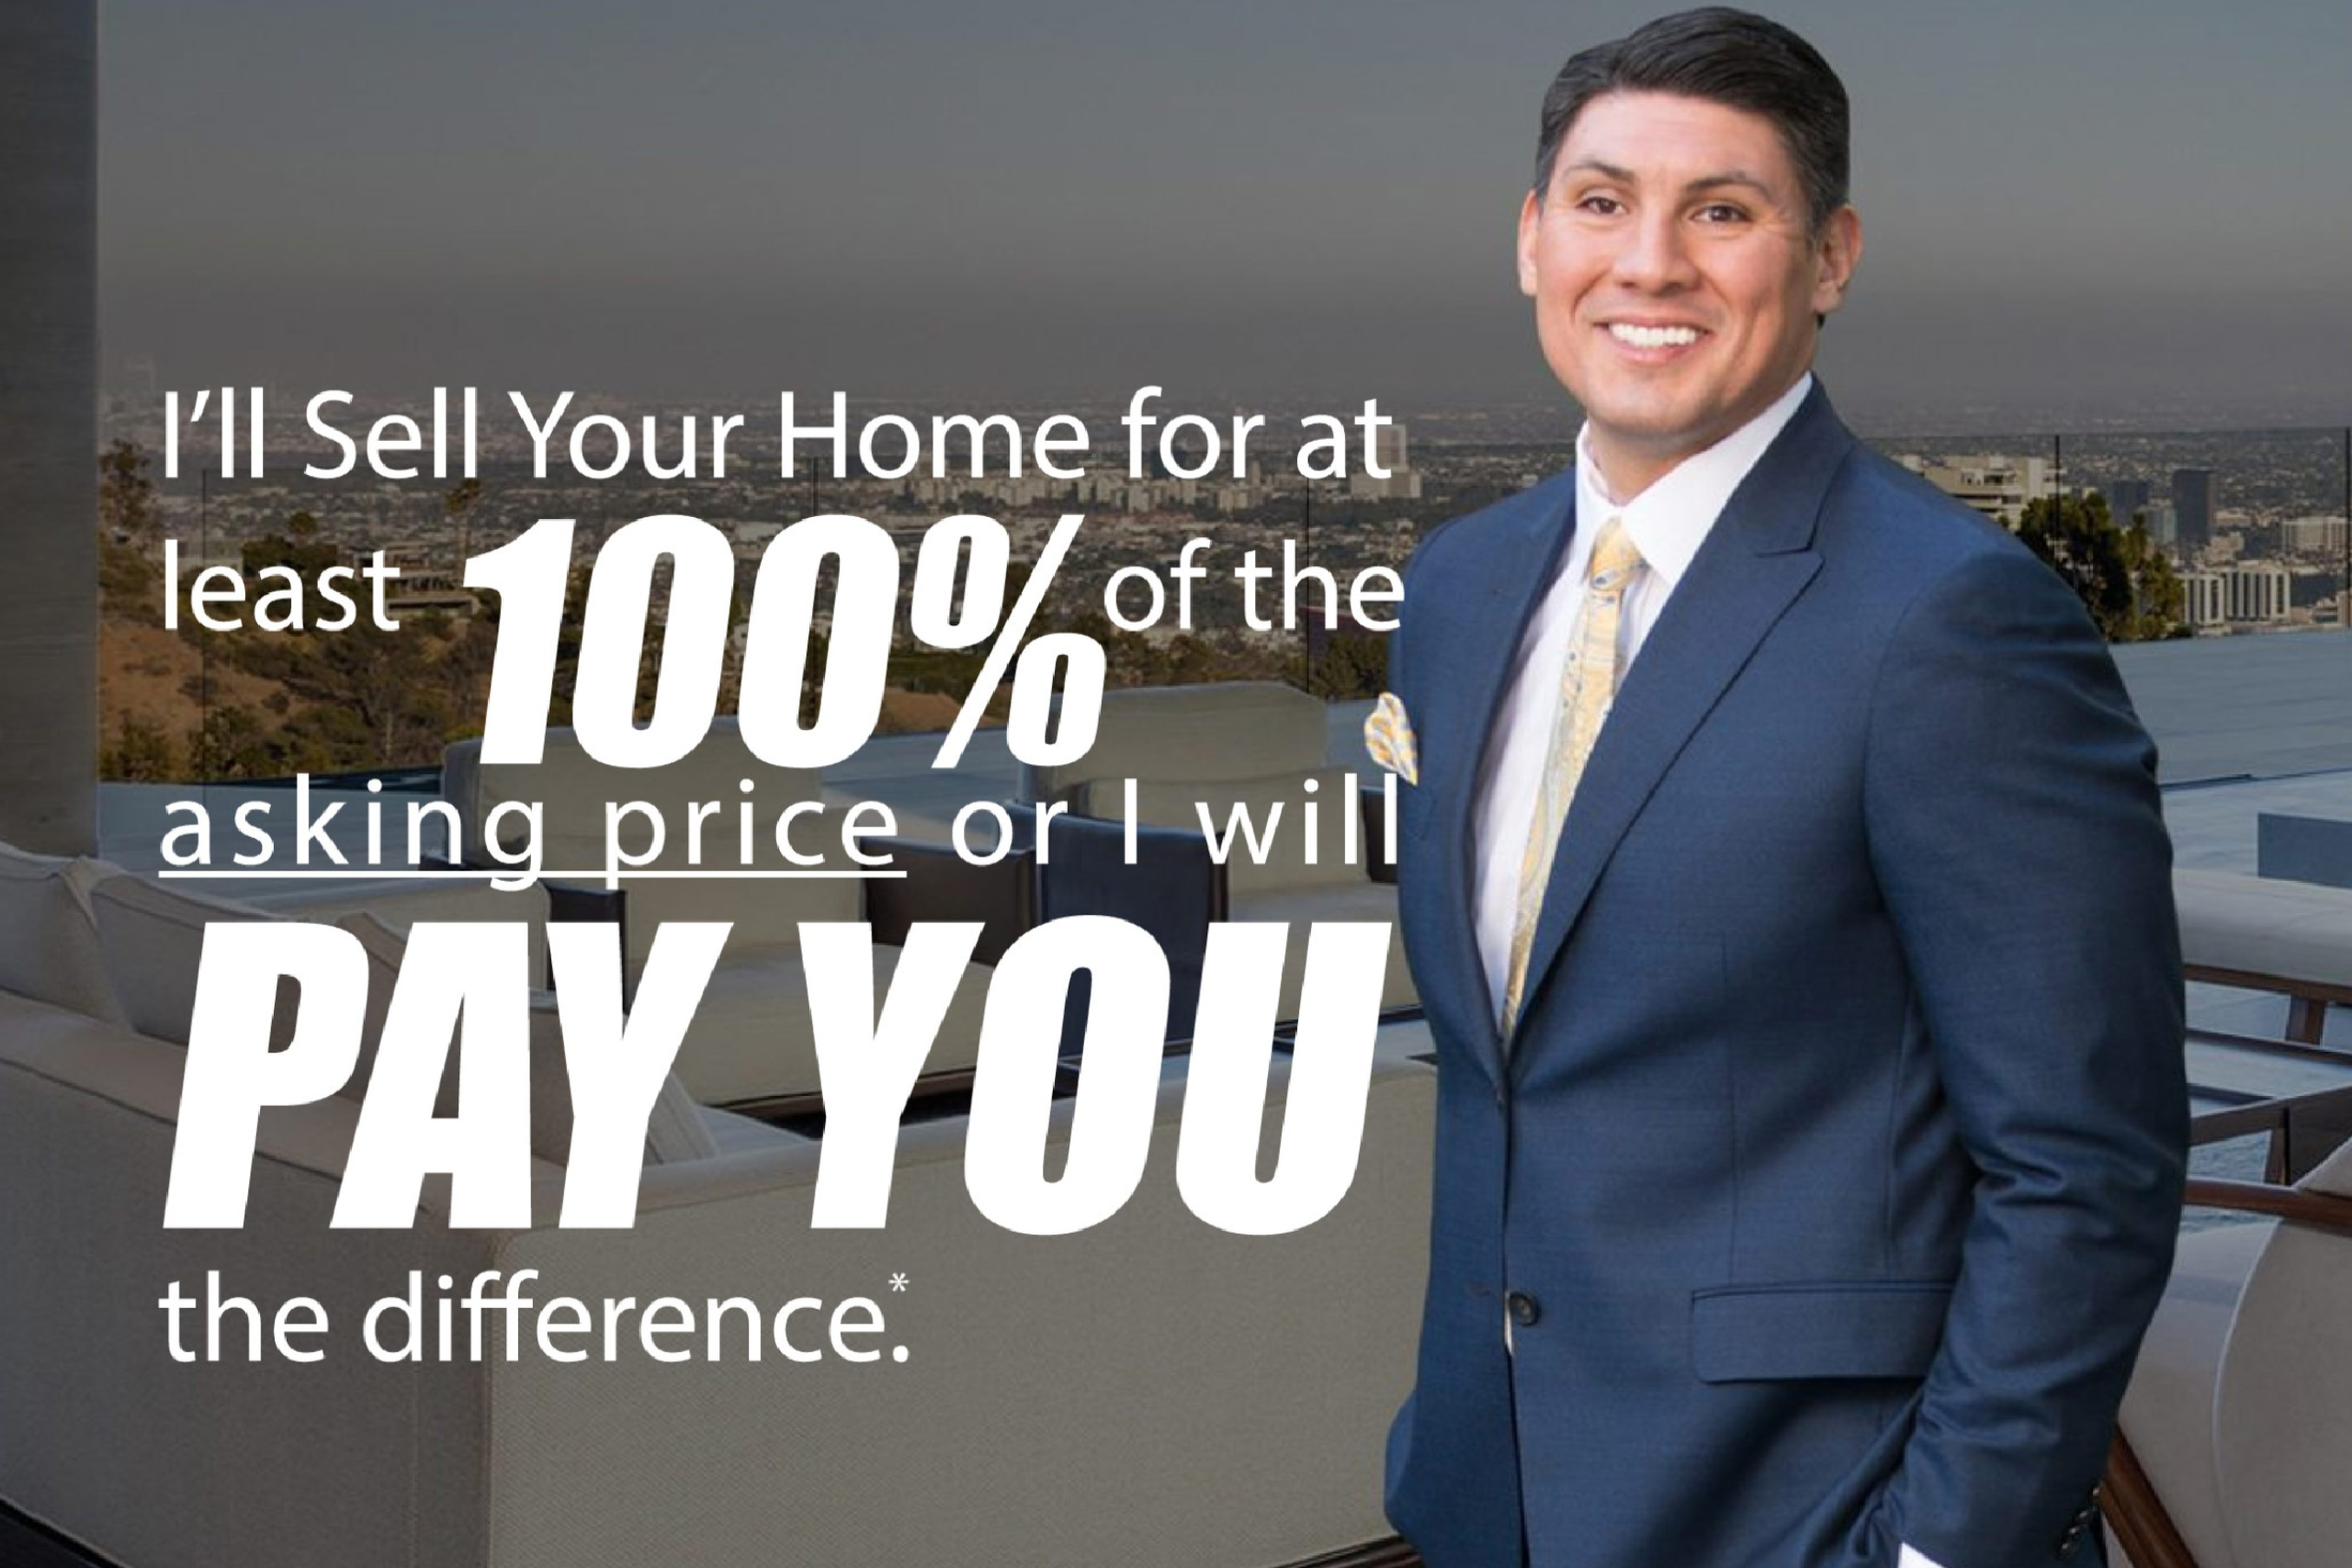 I'll Sell Your Home for at least 100% of Asking Price OR I'll Pay You the Difference! Best real estate agent in los angeles best realtor in los angeles celebrity real estate agent luxury real estate agent pro athlete relocation corporate relocation worldwide relocation global mobility